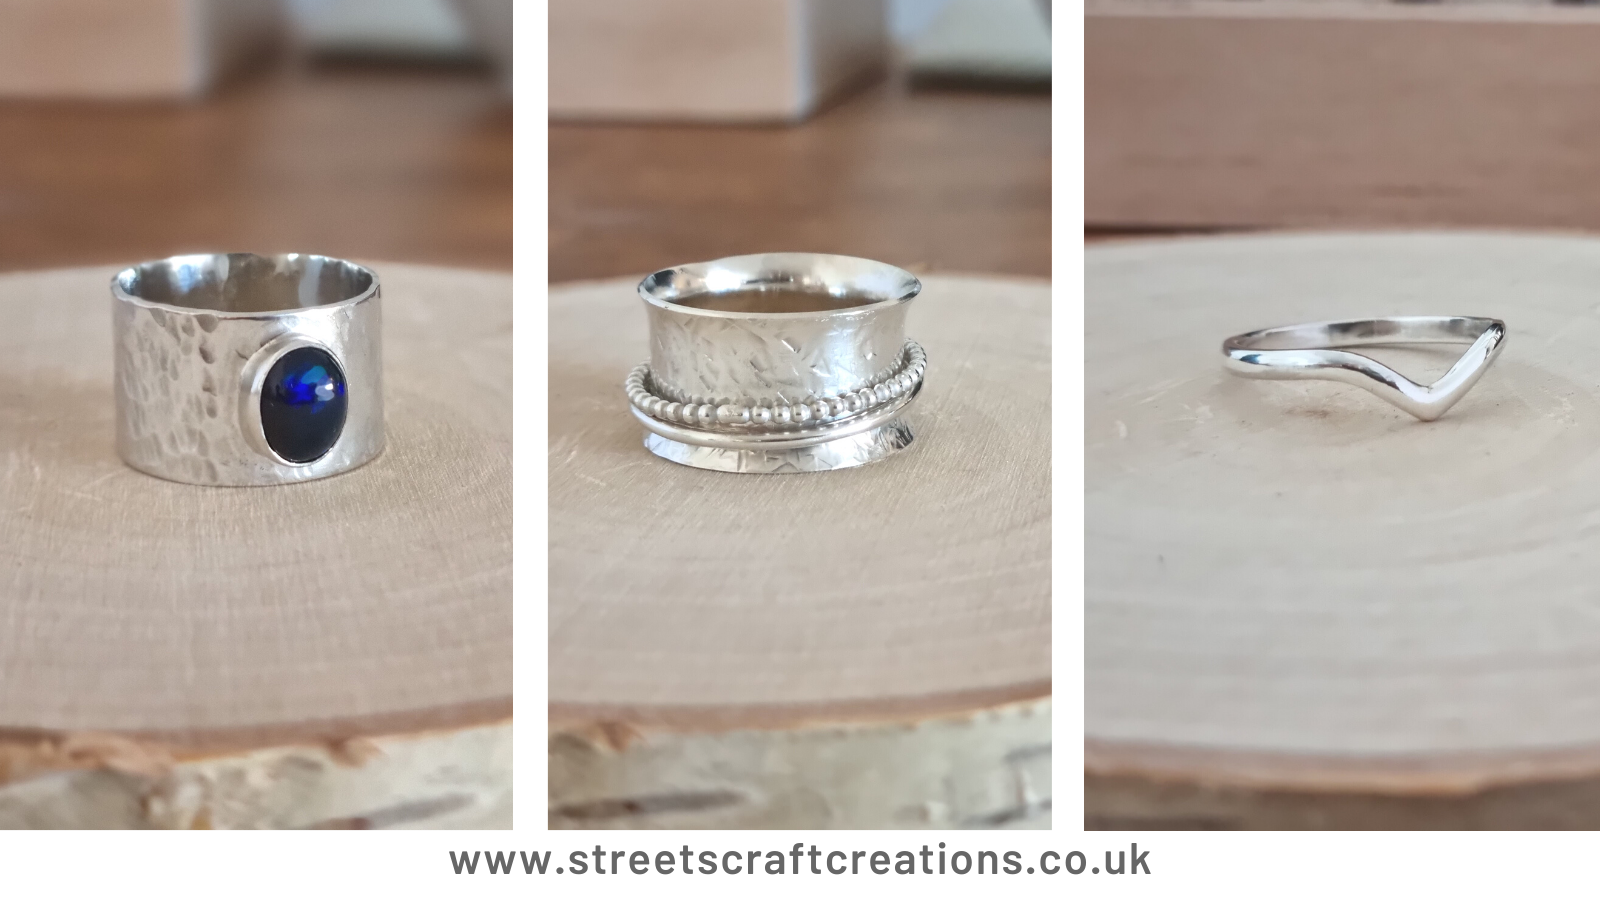 Bespoke Rings Handmade by Streets Craft Creations